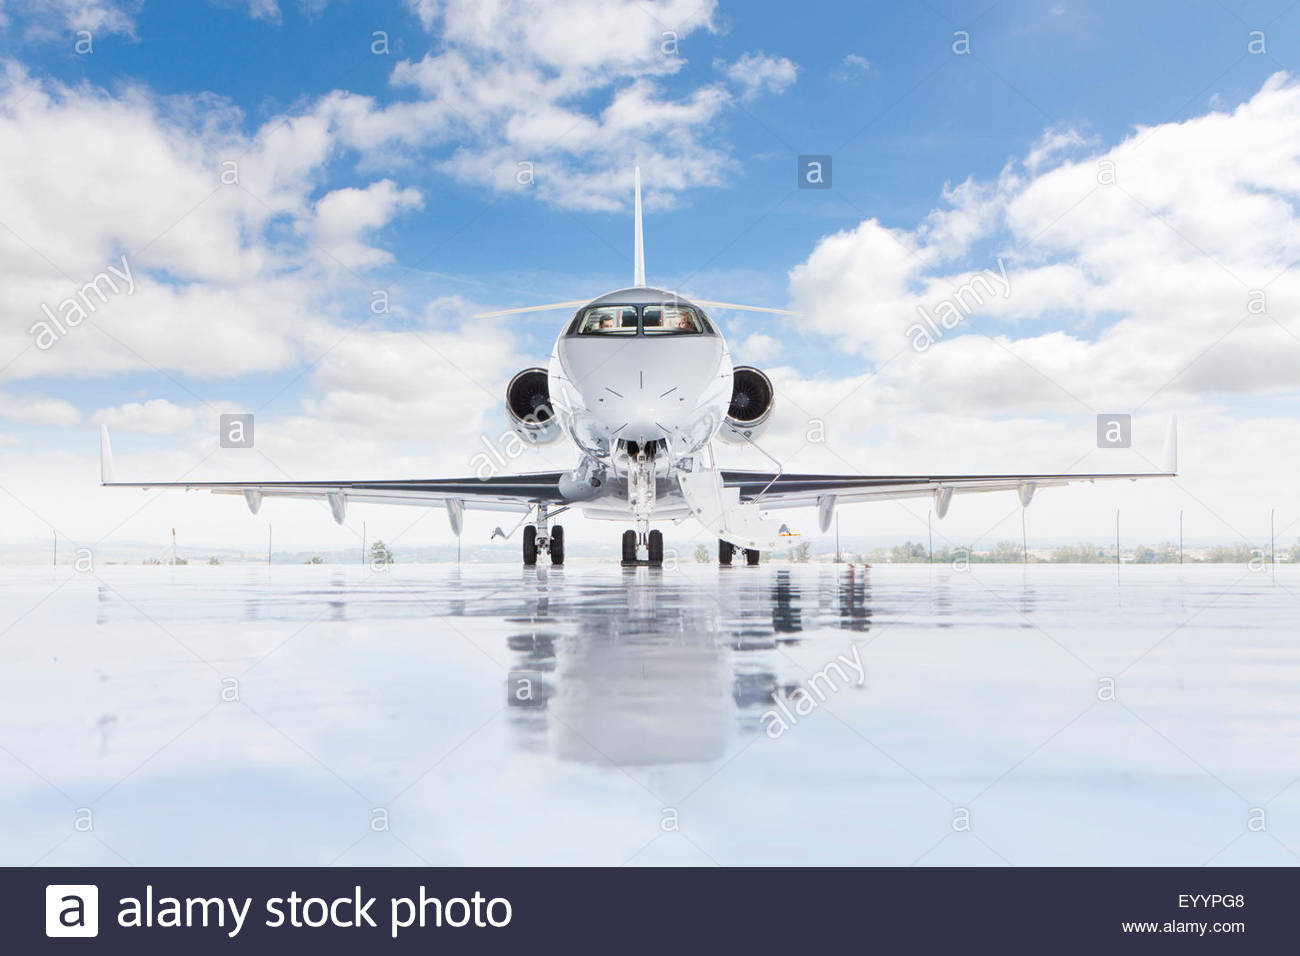 Pilots in private jet - Stock Image